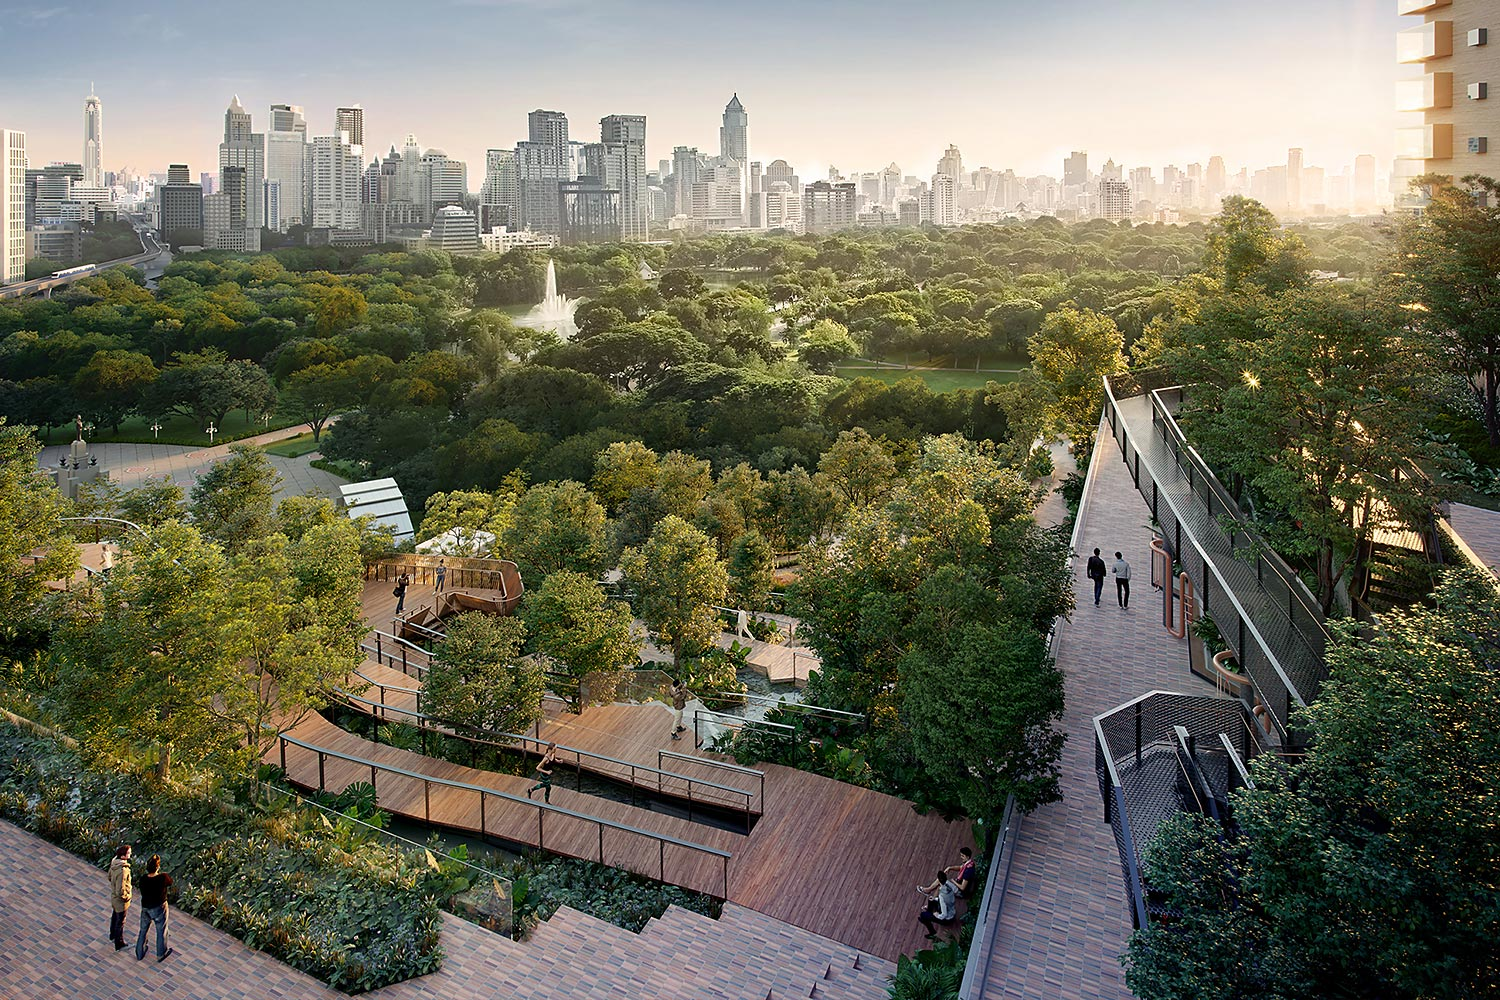 An artist's rendition of Dusit Central Park's rooftop park, which aims to add more green area to the city and become a new public space.